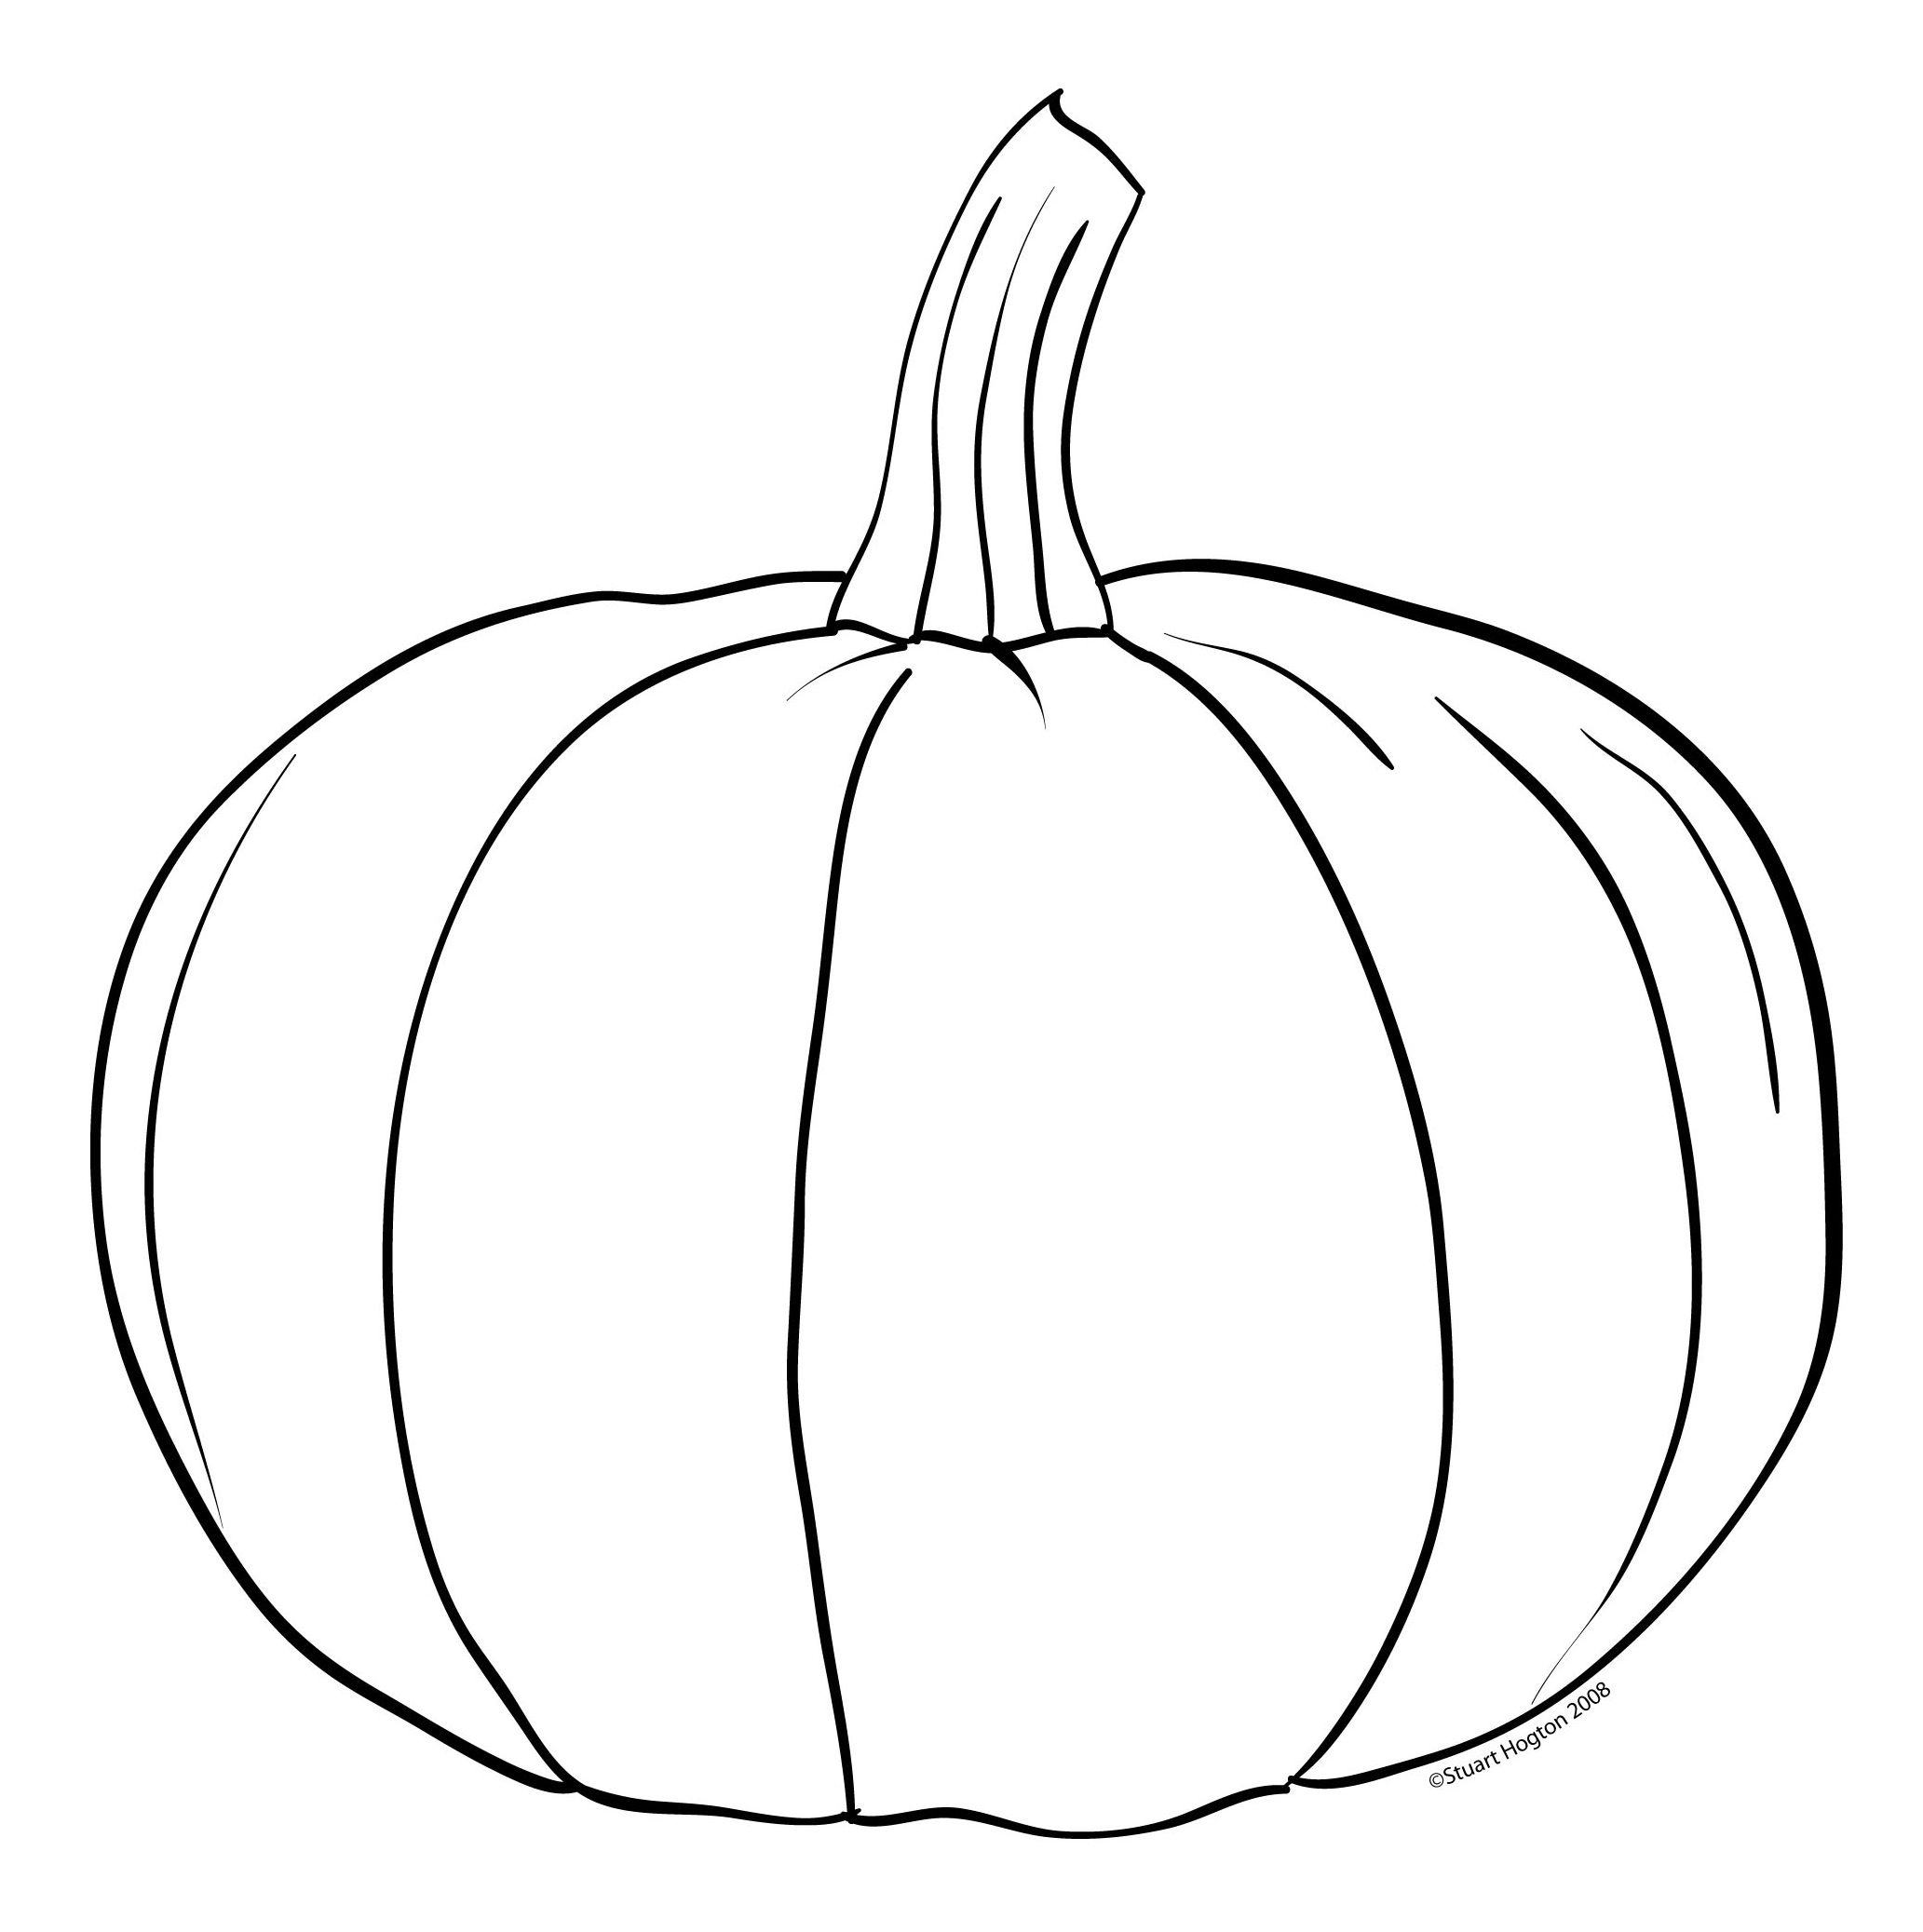 pumpkin templates free - felt jack o lantern pumpkin and ghost faces making life